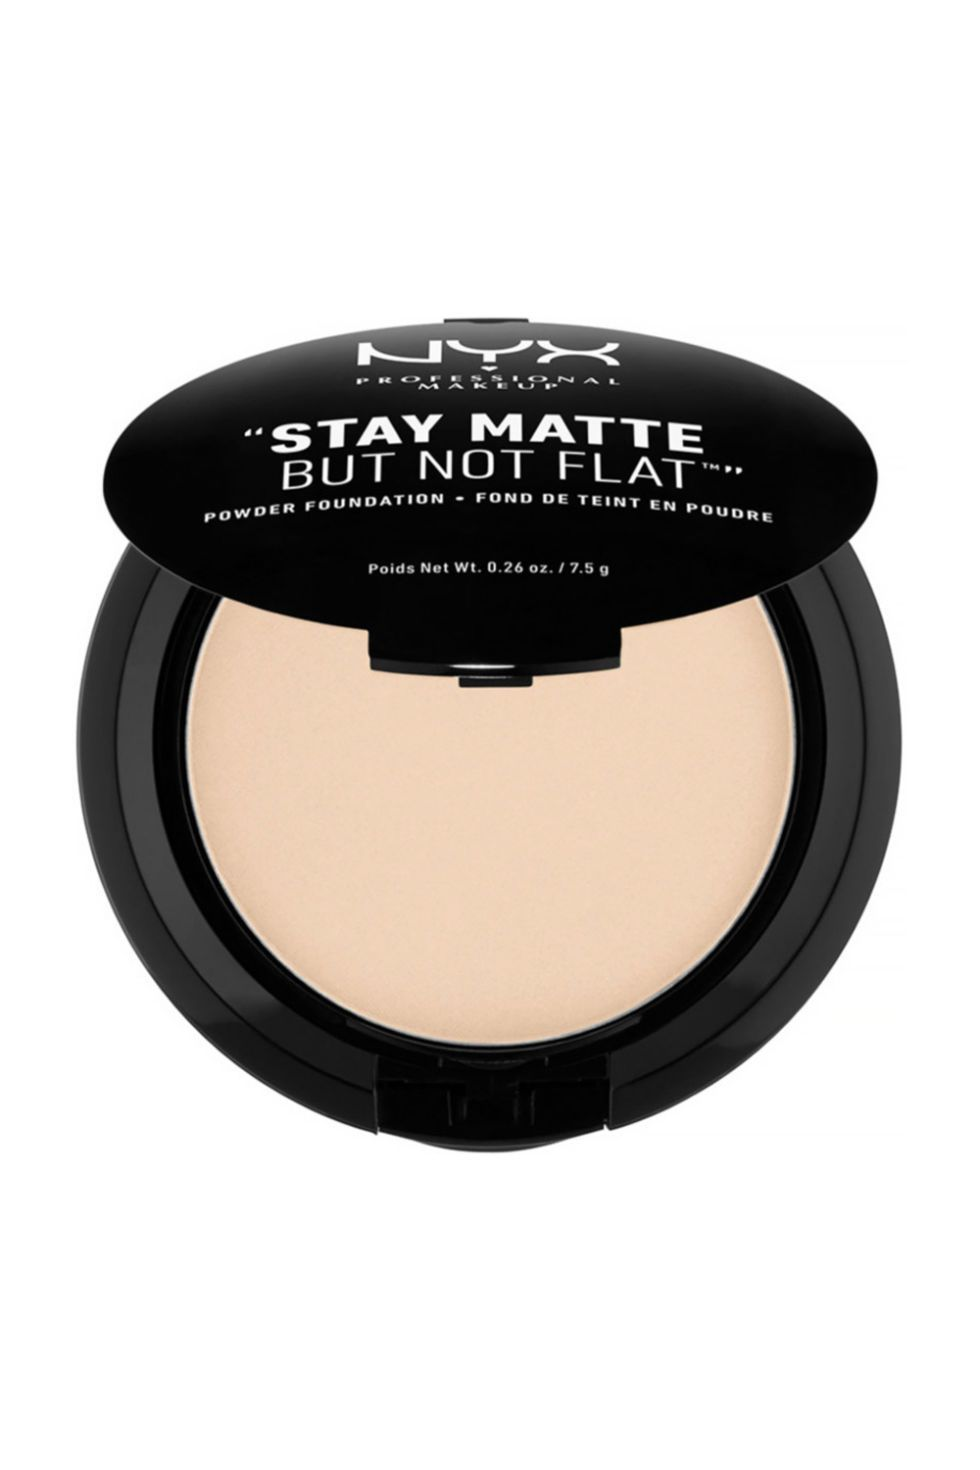 The 5 Best Powder Foundations That Ll Give You Airbrushed Looking Skin Best Powder Foundation Powder Foundation Foundation For Dry Skin